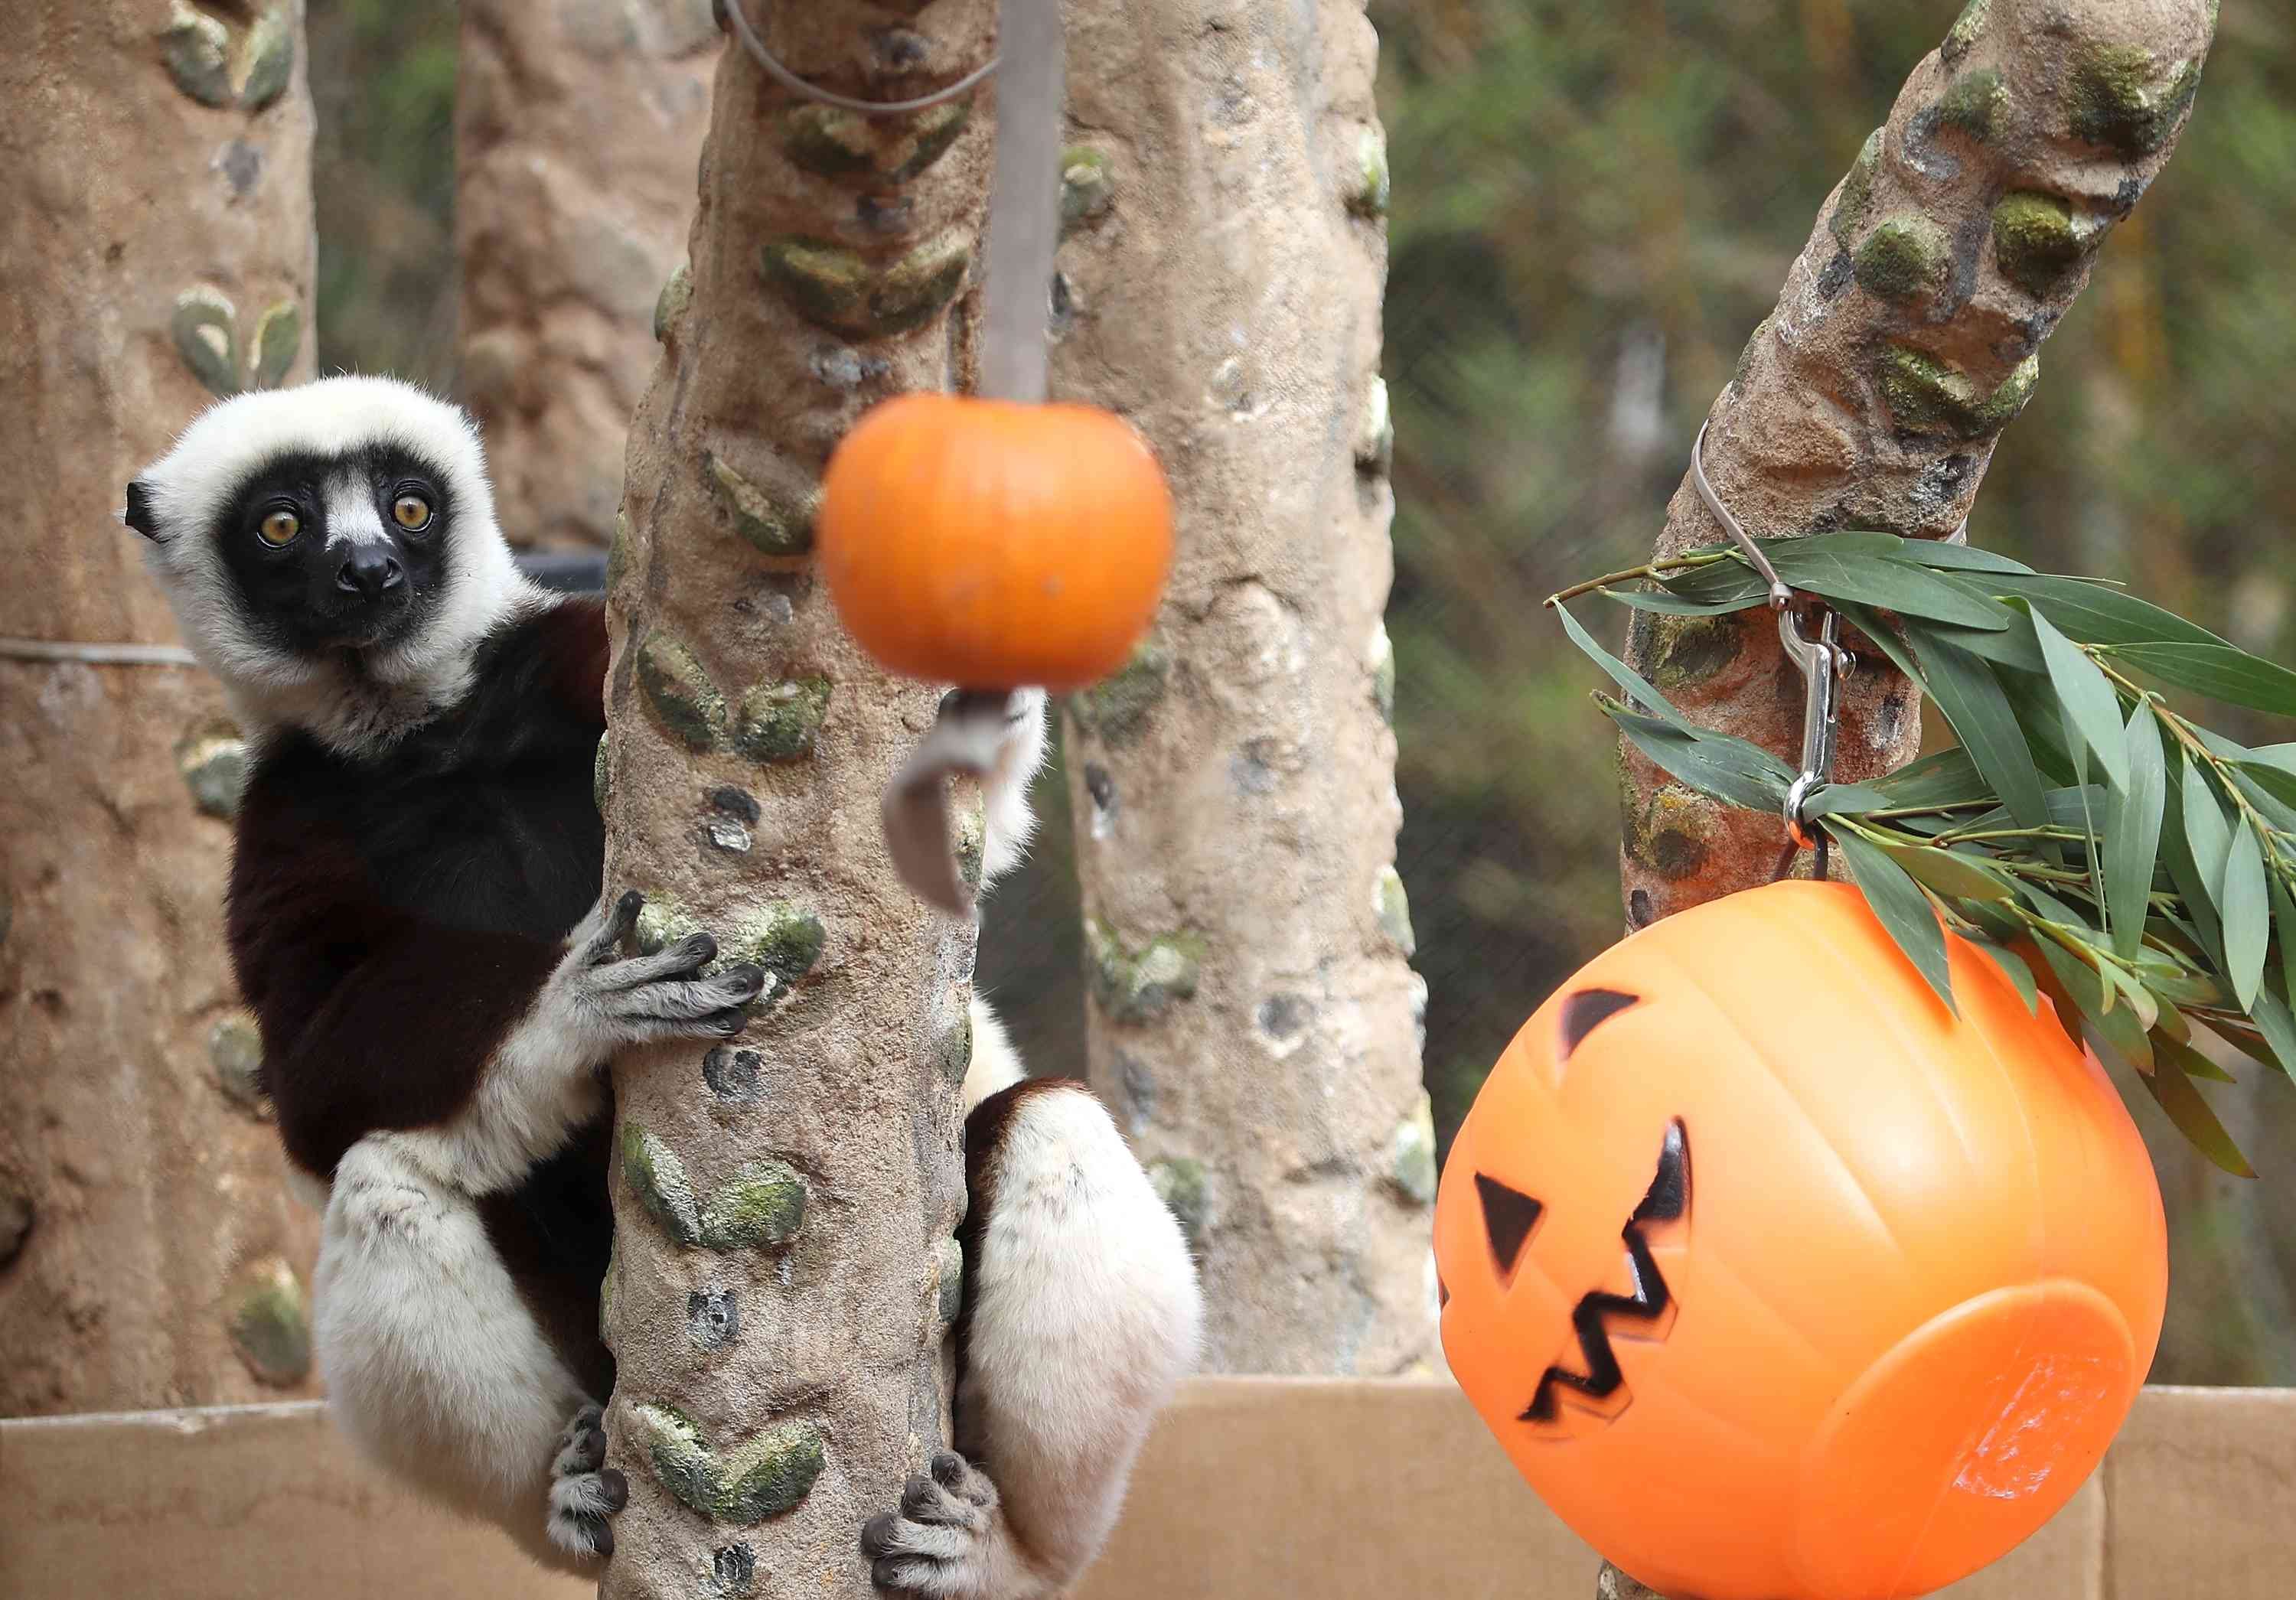 Lemur at zoo with Halloween decorations